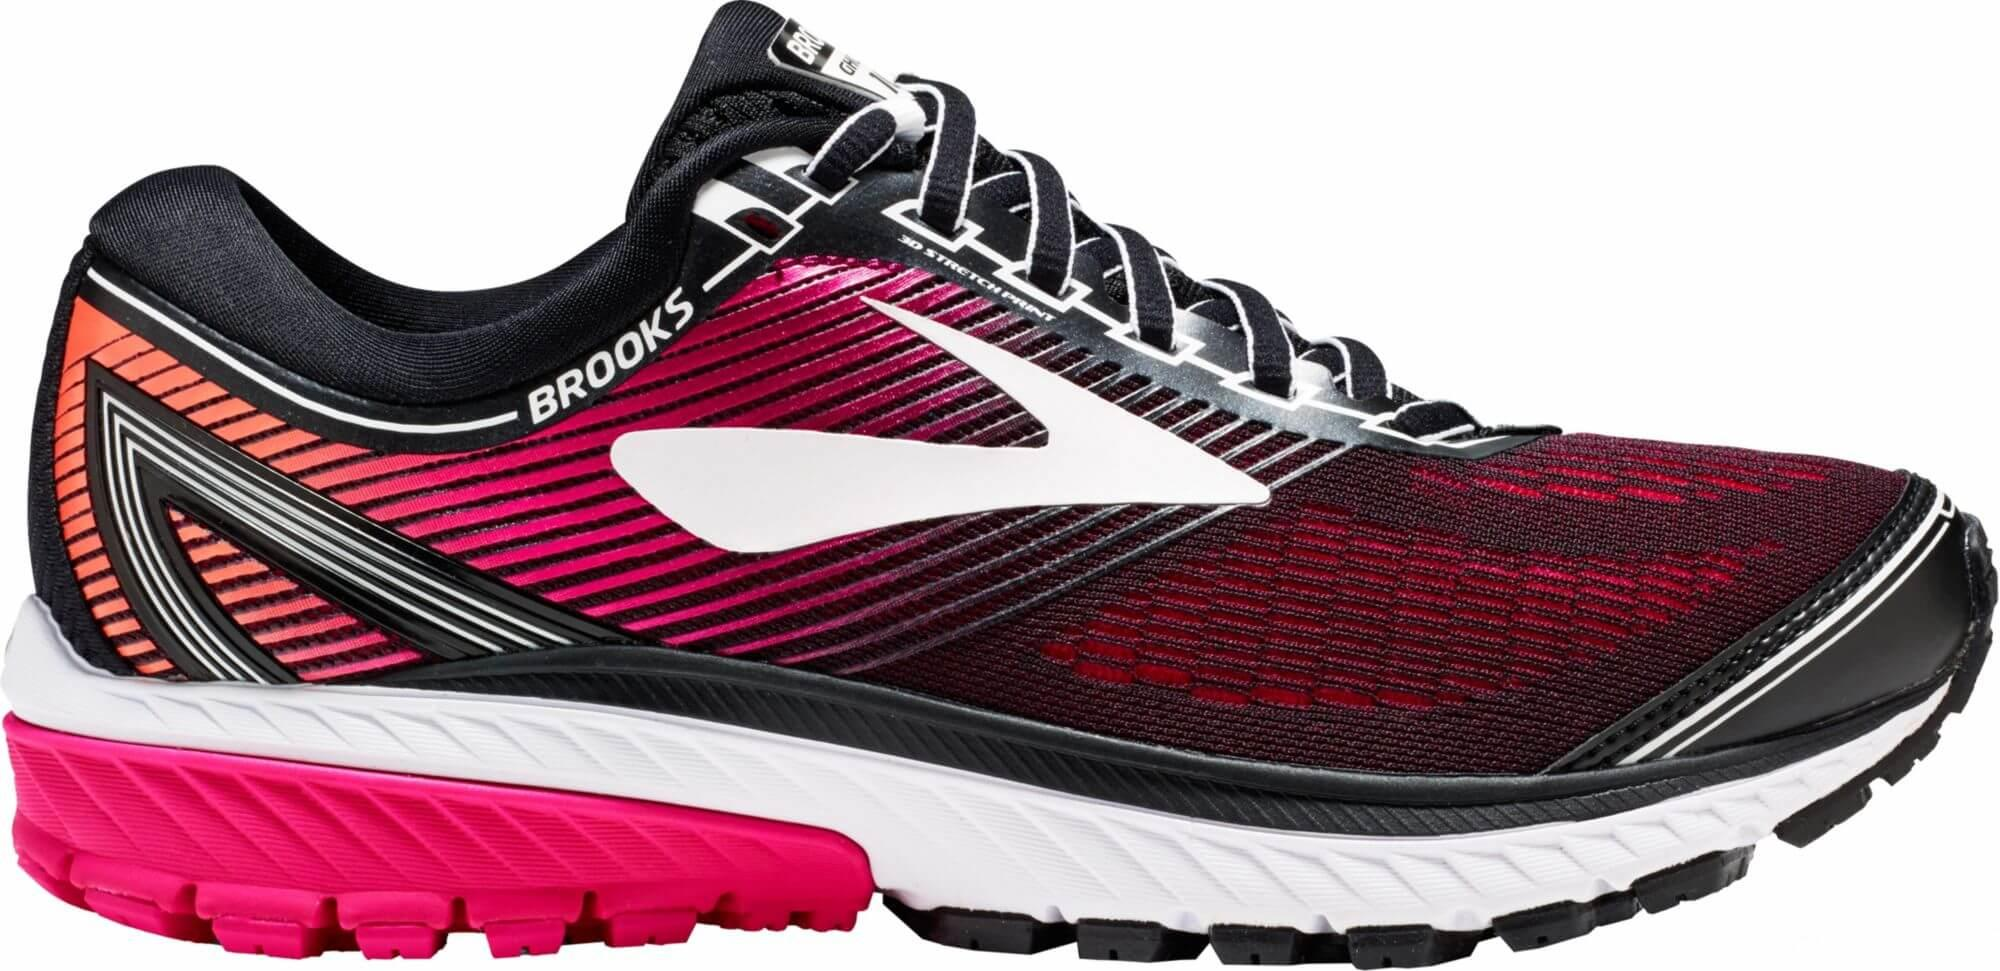 Best Running Shoes For Everyday Use